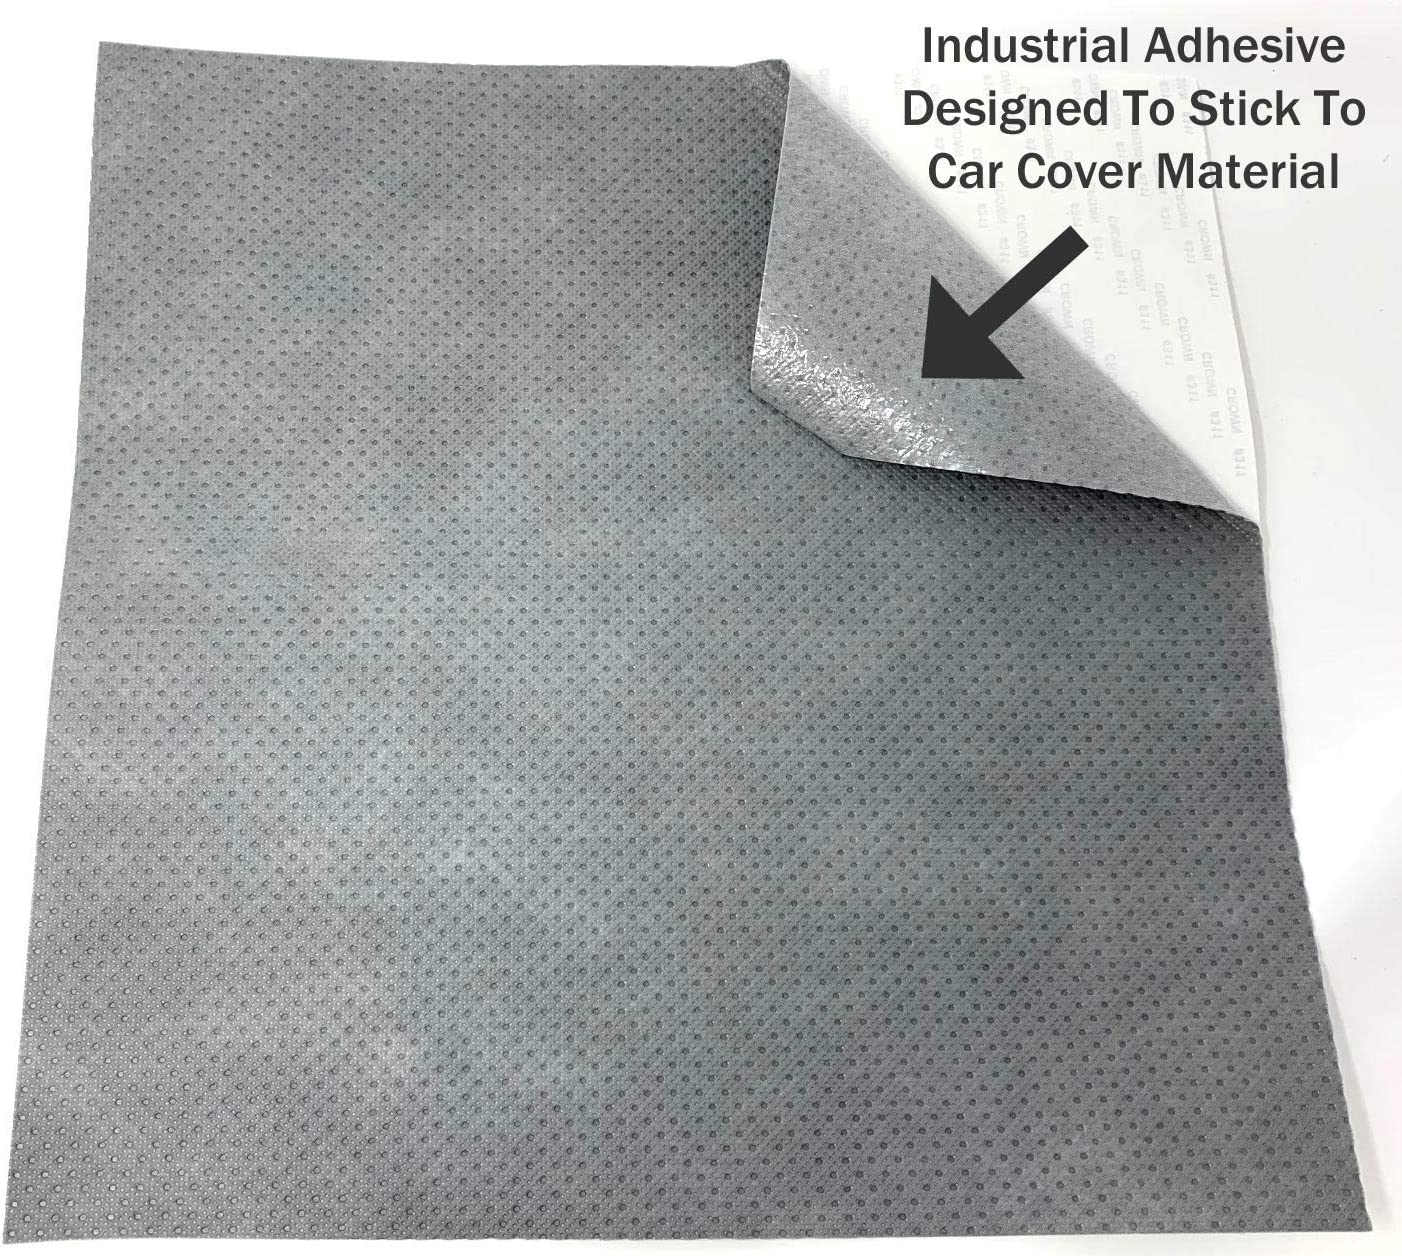 Polypropylene 2 Pack Patch for Car Covers Motorcycle Covers and More Material RV Covers Strong Self Adhesive Backing Car Covers Use On Boat Covers 1 ft x 1ft Patch 2L, 3L, 4L, 5L